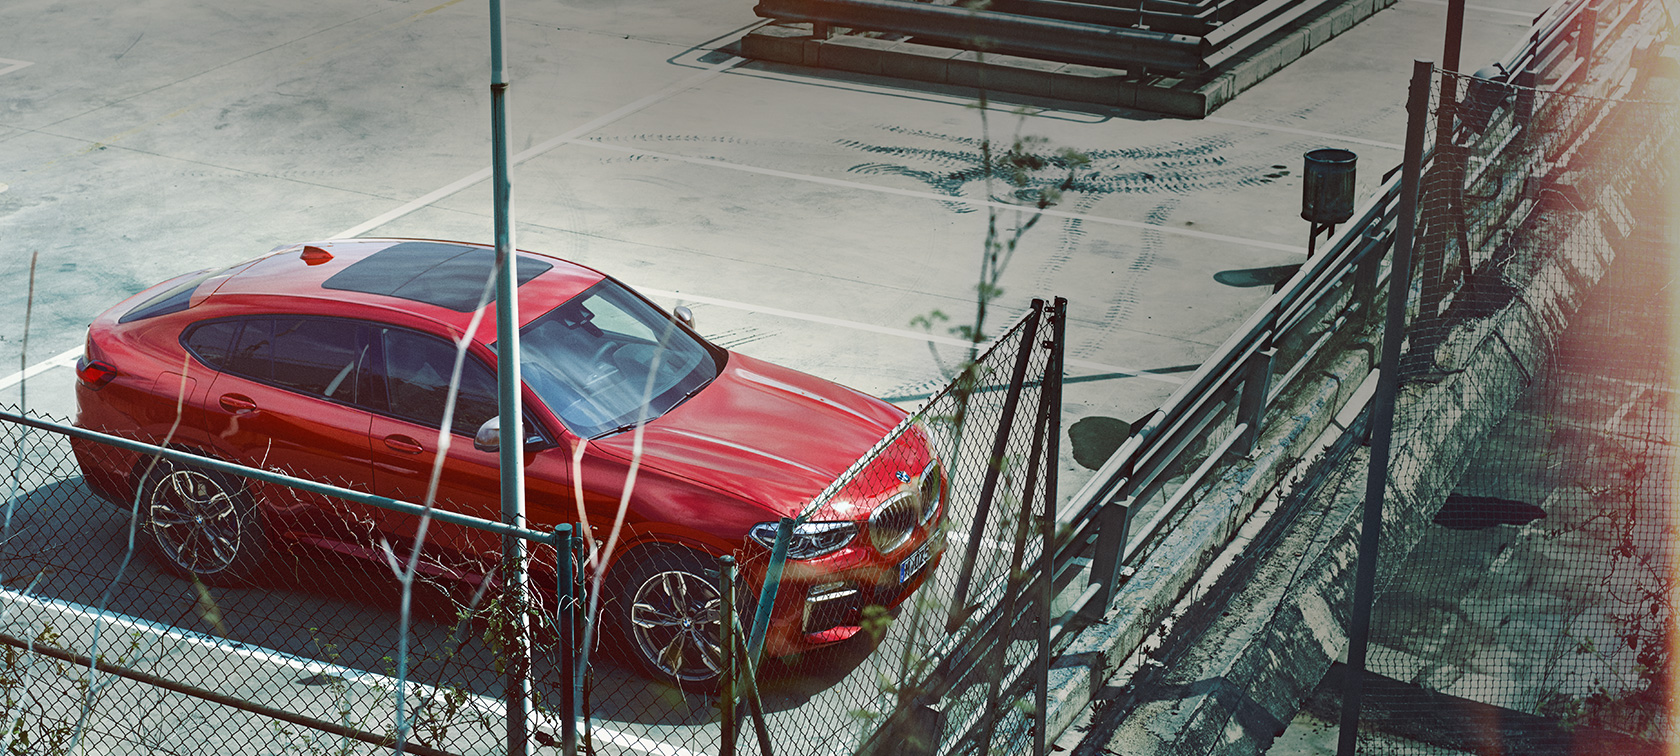 BMW X4 G02 2018 Flamenco Red brilliant effect parking on parking deck bird's eye view